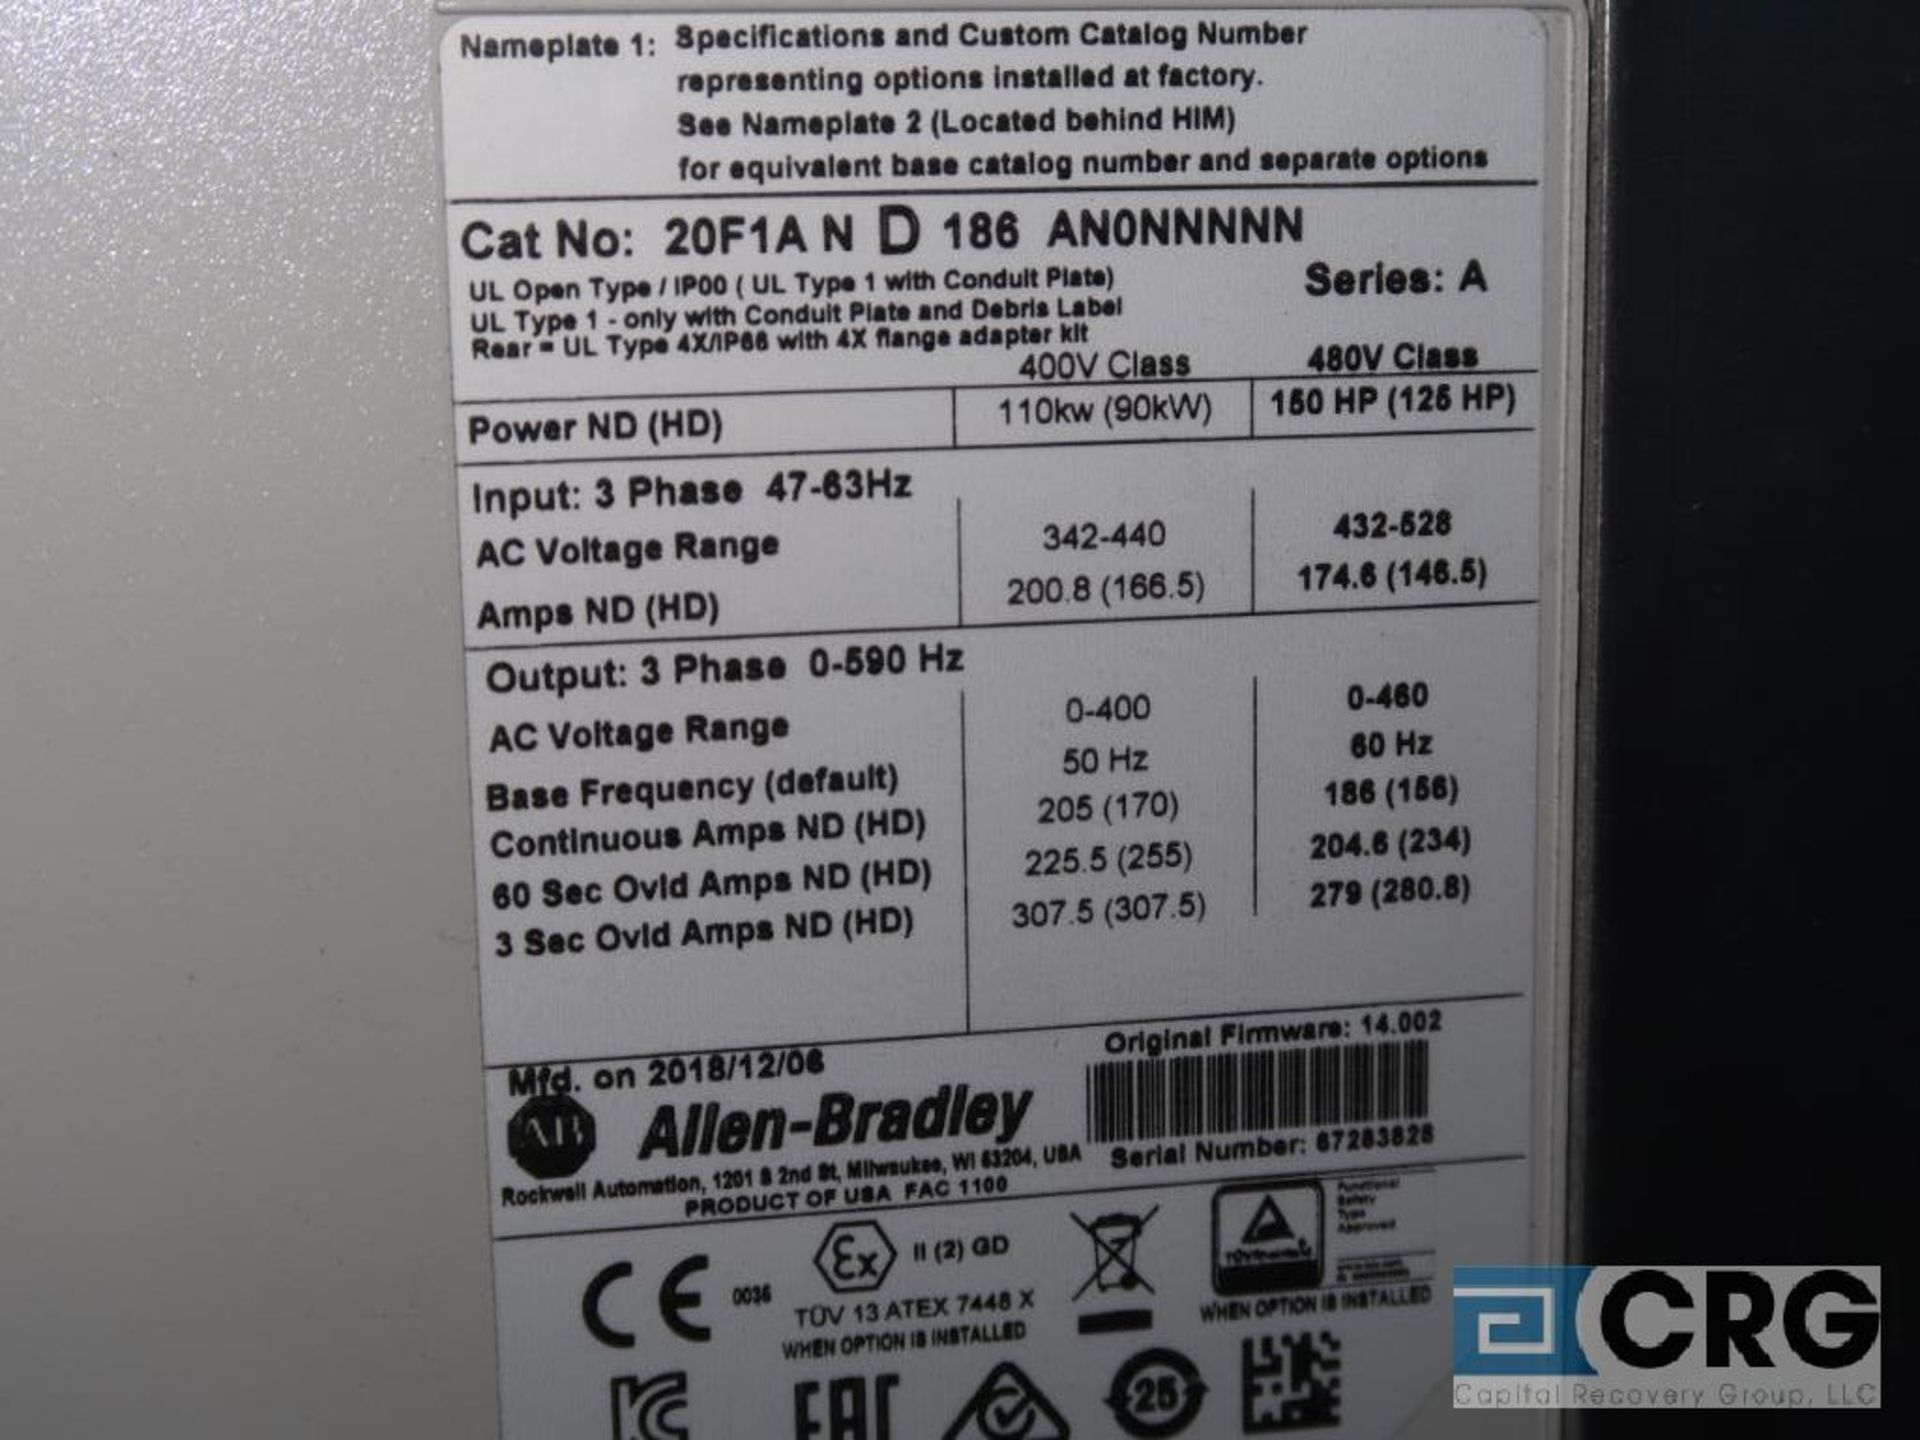 Allen Bradley Power Flex 753 150 HP variable frequency drive, 480 volt, s/n 67283828 (Finish - Image 2 of 2